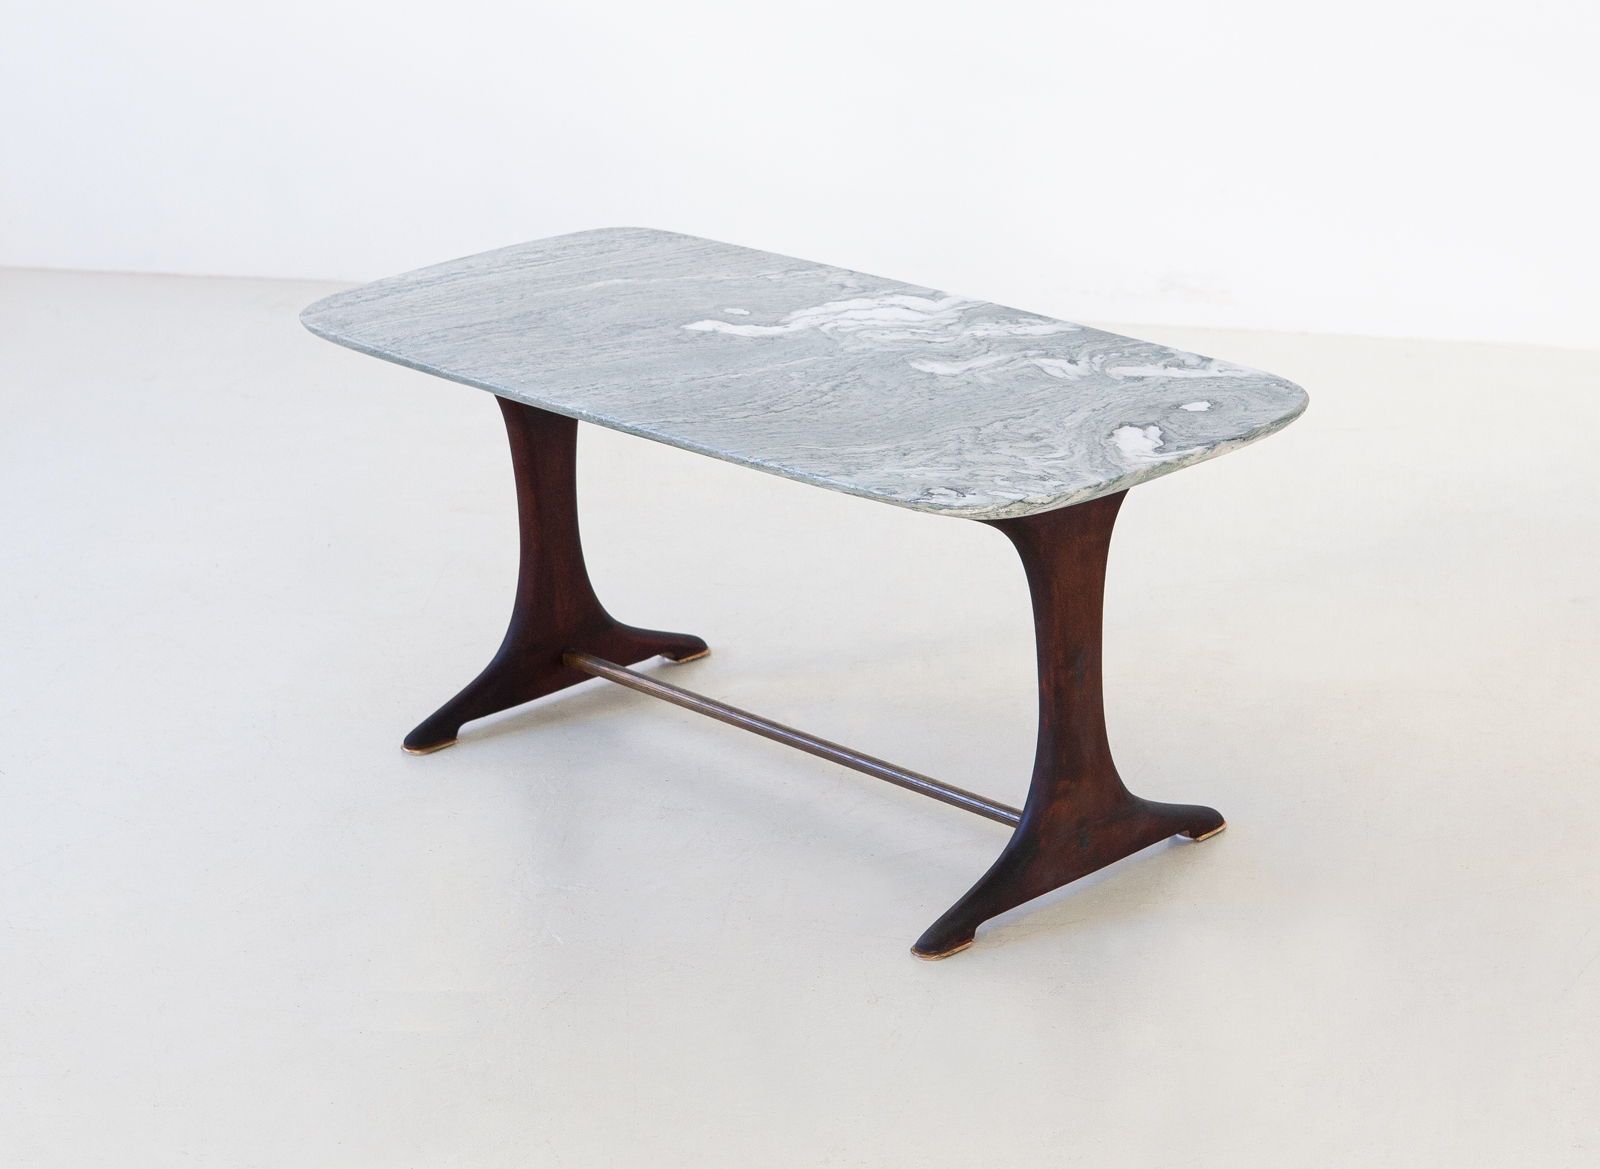 1950s-italian-low-table-with-marble-top-2-t88